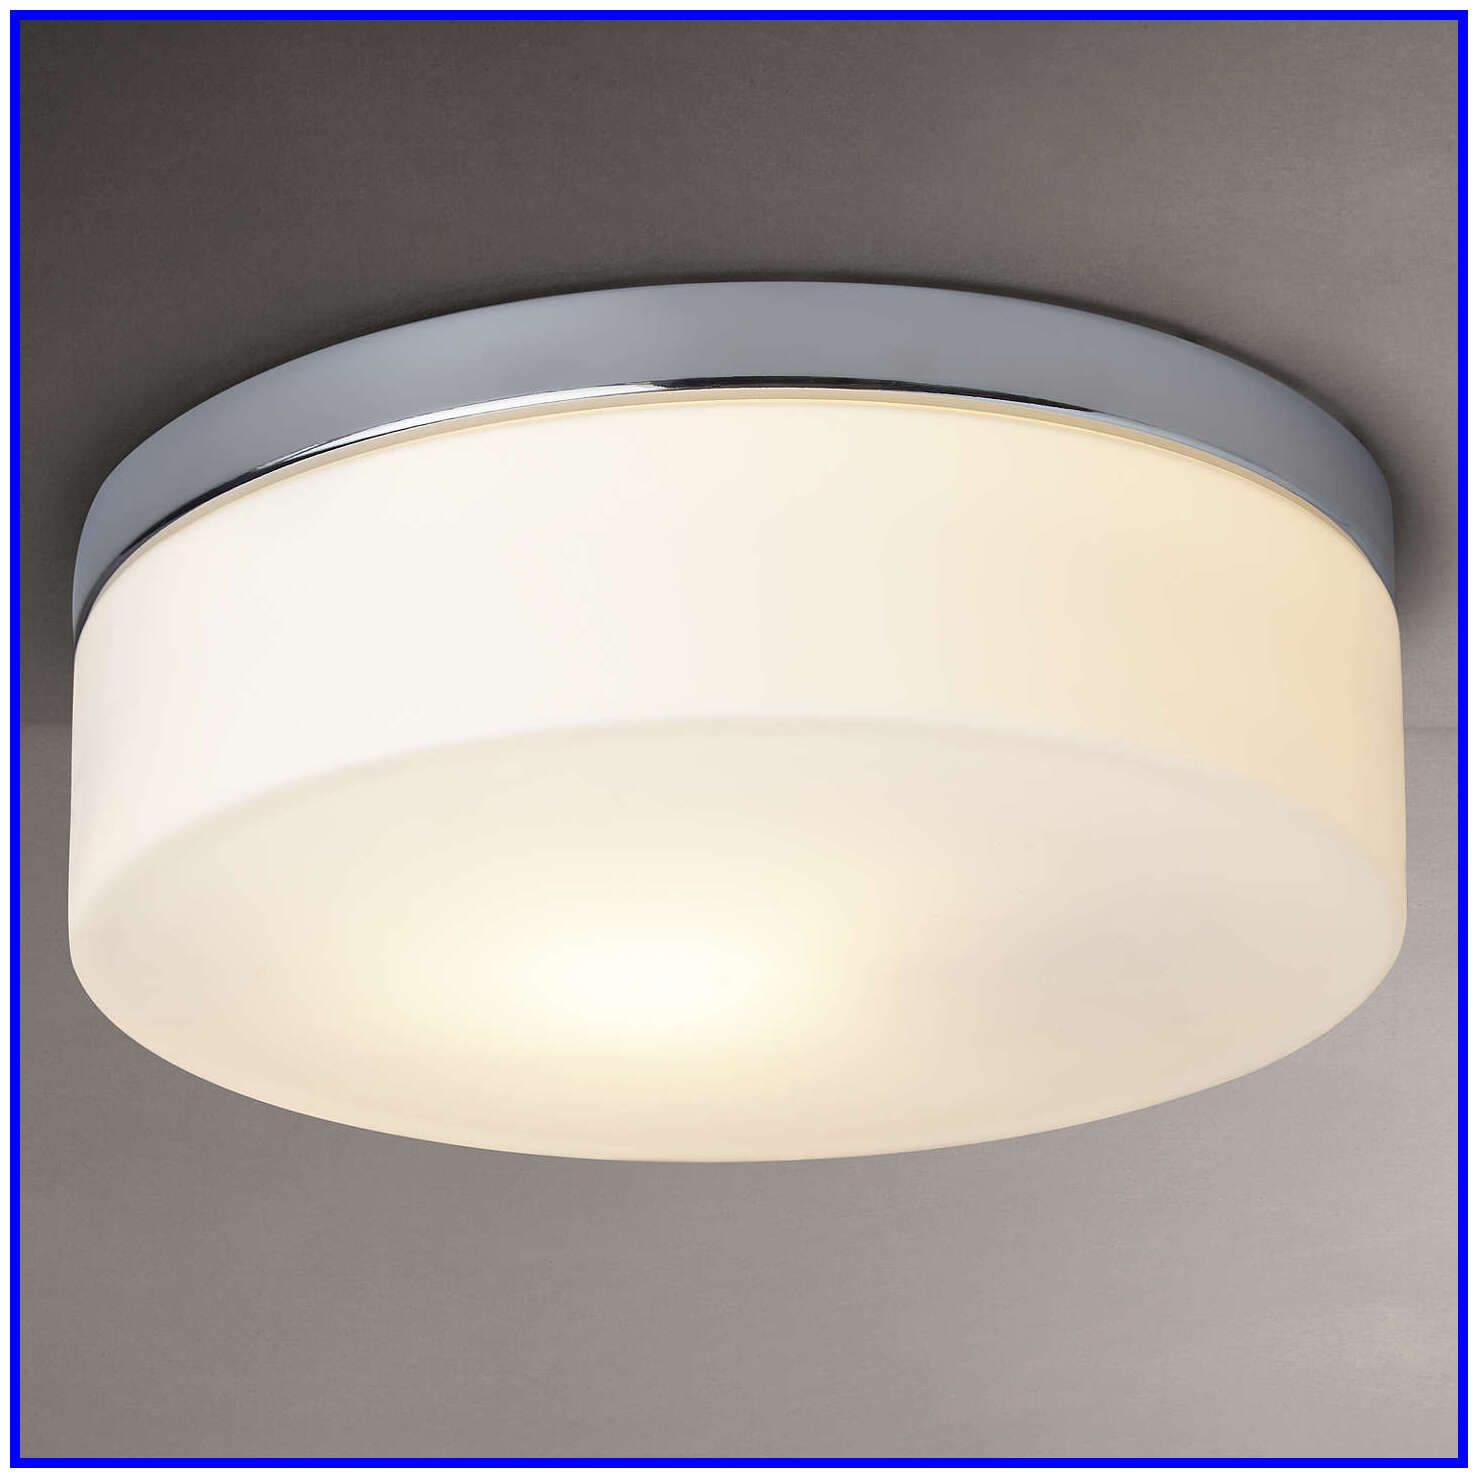 32 Reference Of Bathroom Round Light Bulbs In 2020 Bathroom Ceiling Light Ceiling Lights Bathroom Light Fixtures Ceiling